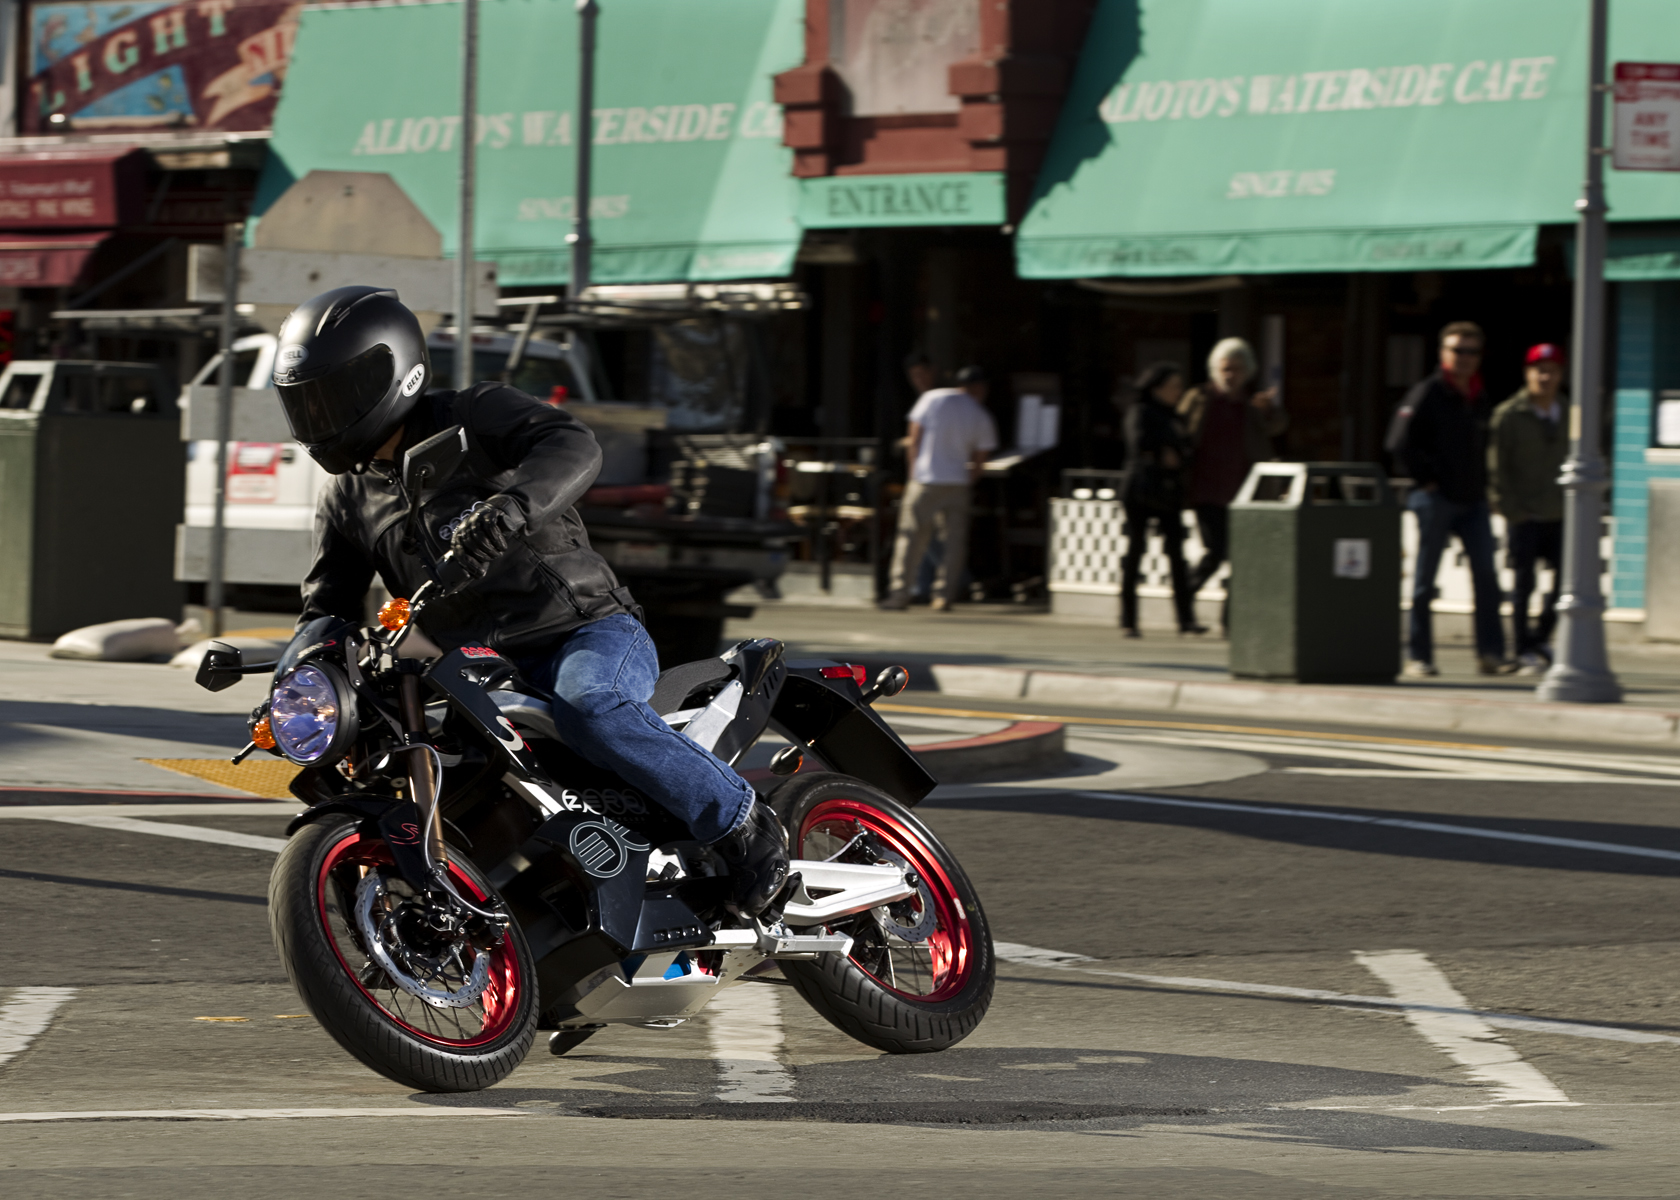 '.2011 Zero S Electric Motorcycle: Sideways Turn, Fisherman's Wharf.'